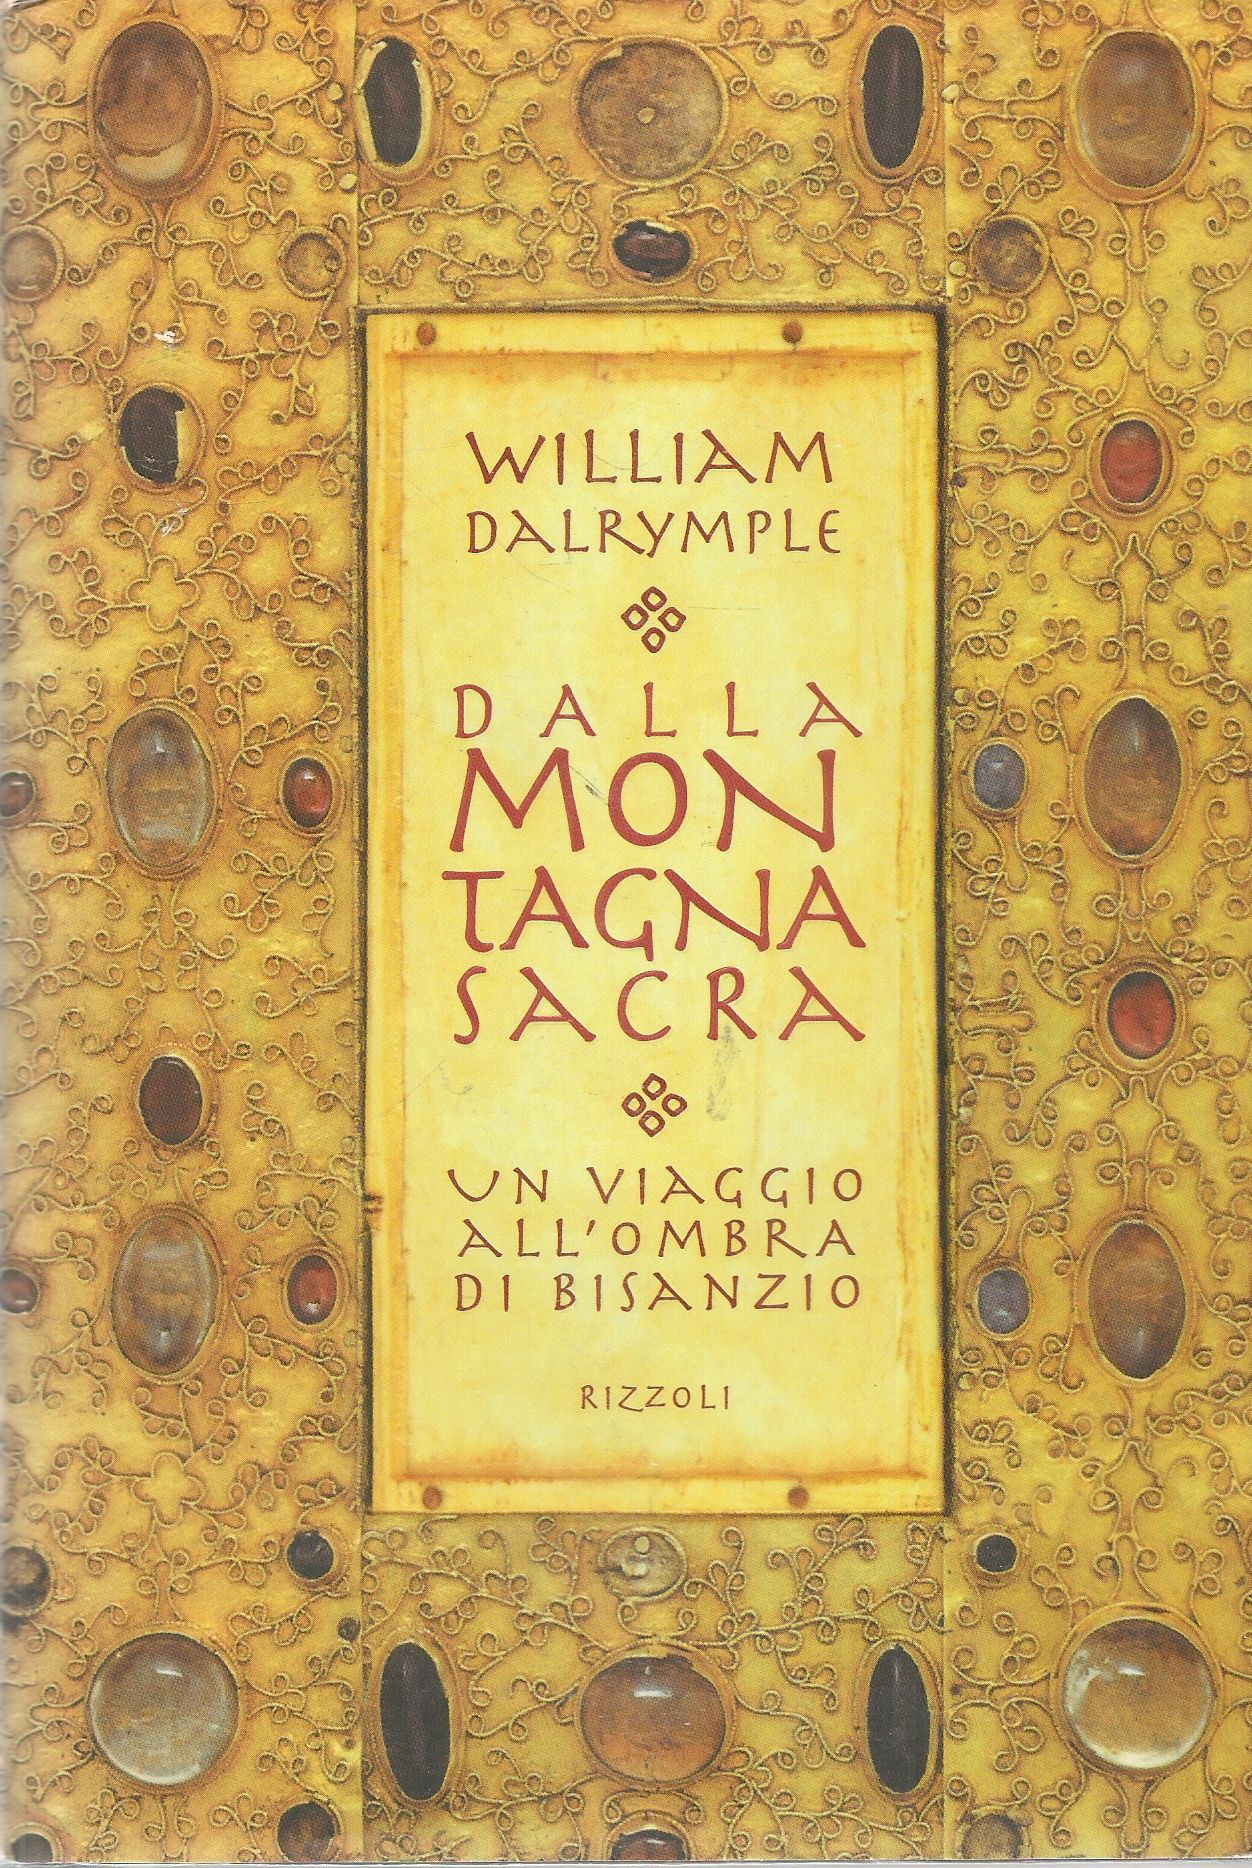 DALLA MONTAGNA SACRA - WILLIAM DALRYMPLE